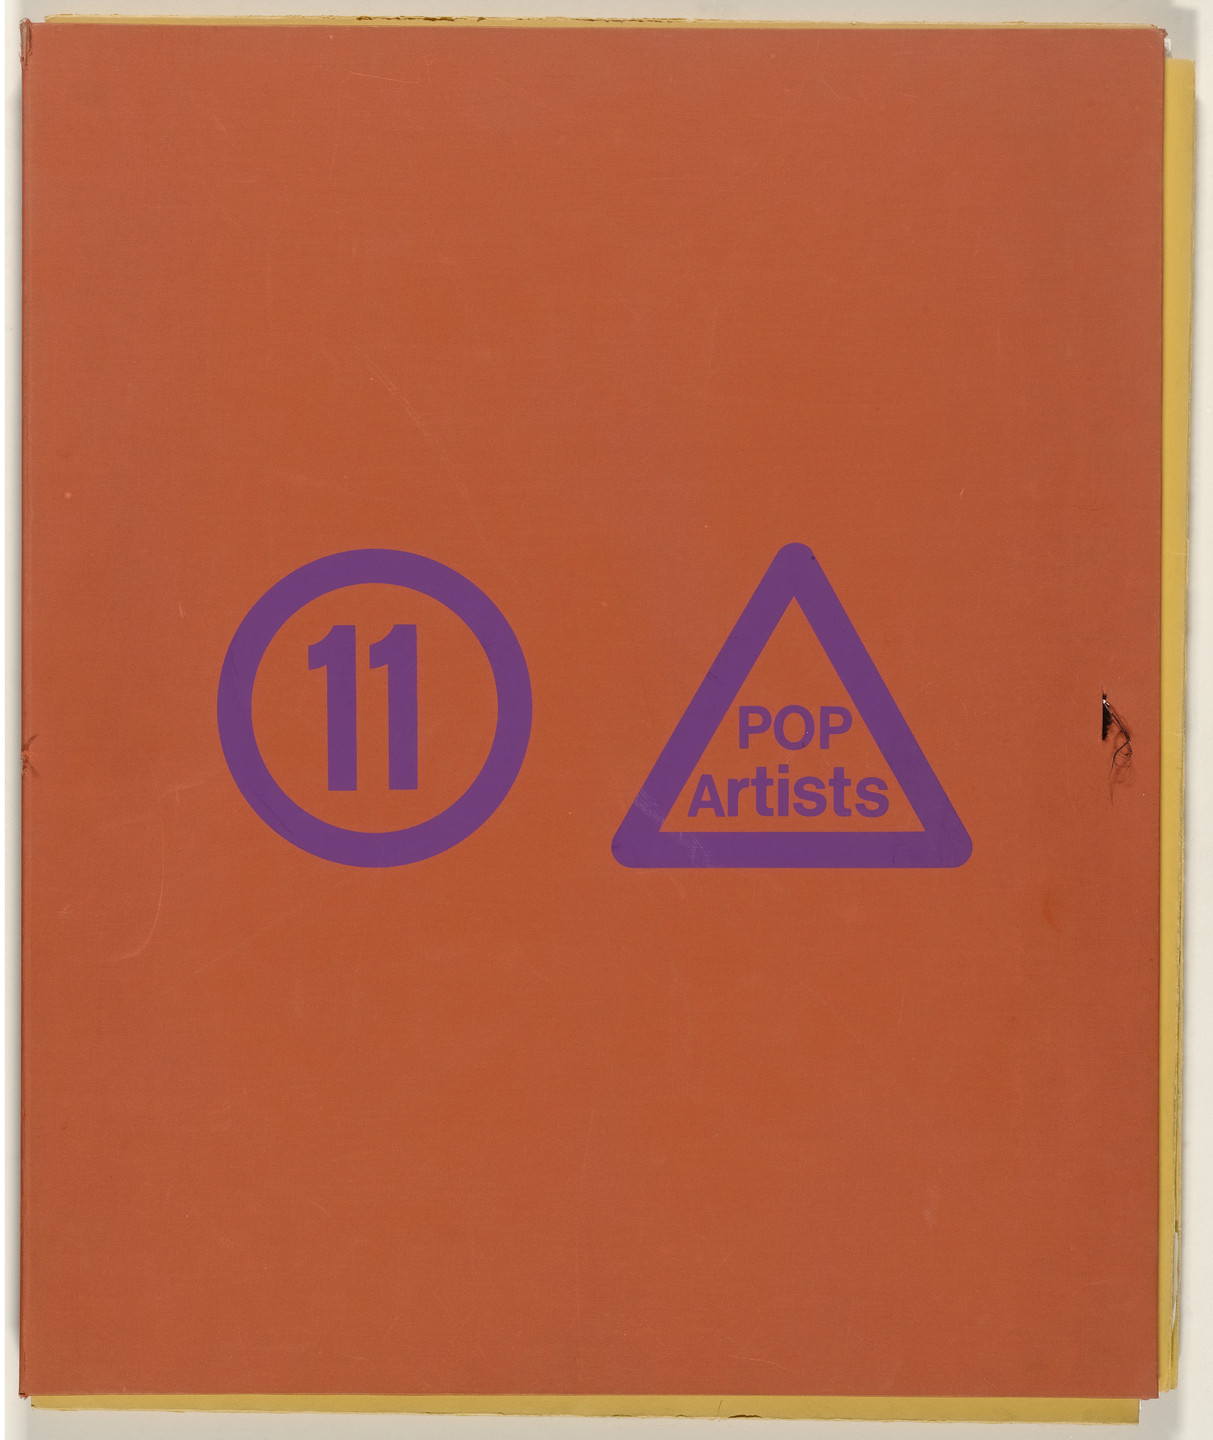 Allan D'Arcangelo, Jim Dine, Allen Jones, Gerald Laing, Roy Lichtenstein, Peter Phillips, Mel Ramos, James Rosenquist, Andy Warhol, John Wesley, Tom Wesselmann, Various Artists. 11 Pop Artists. 1966